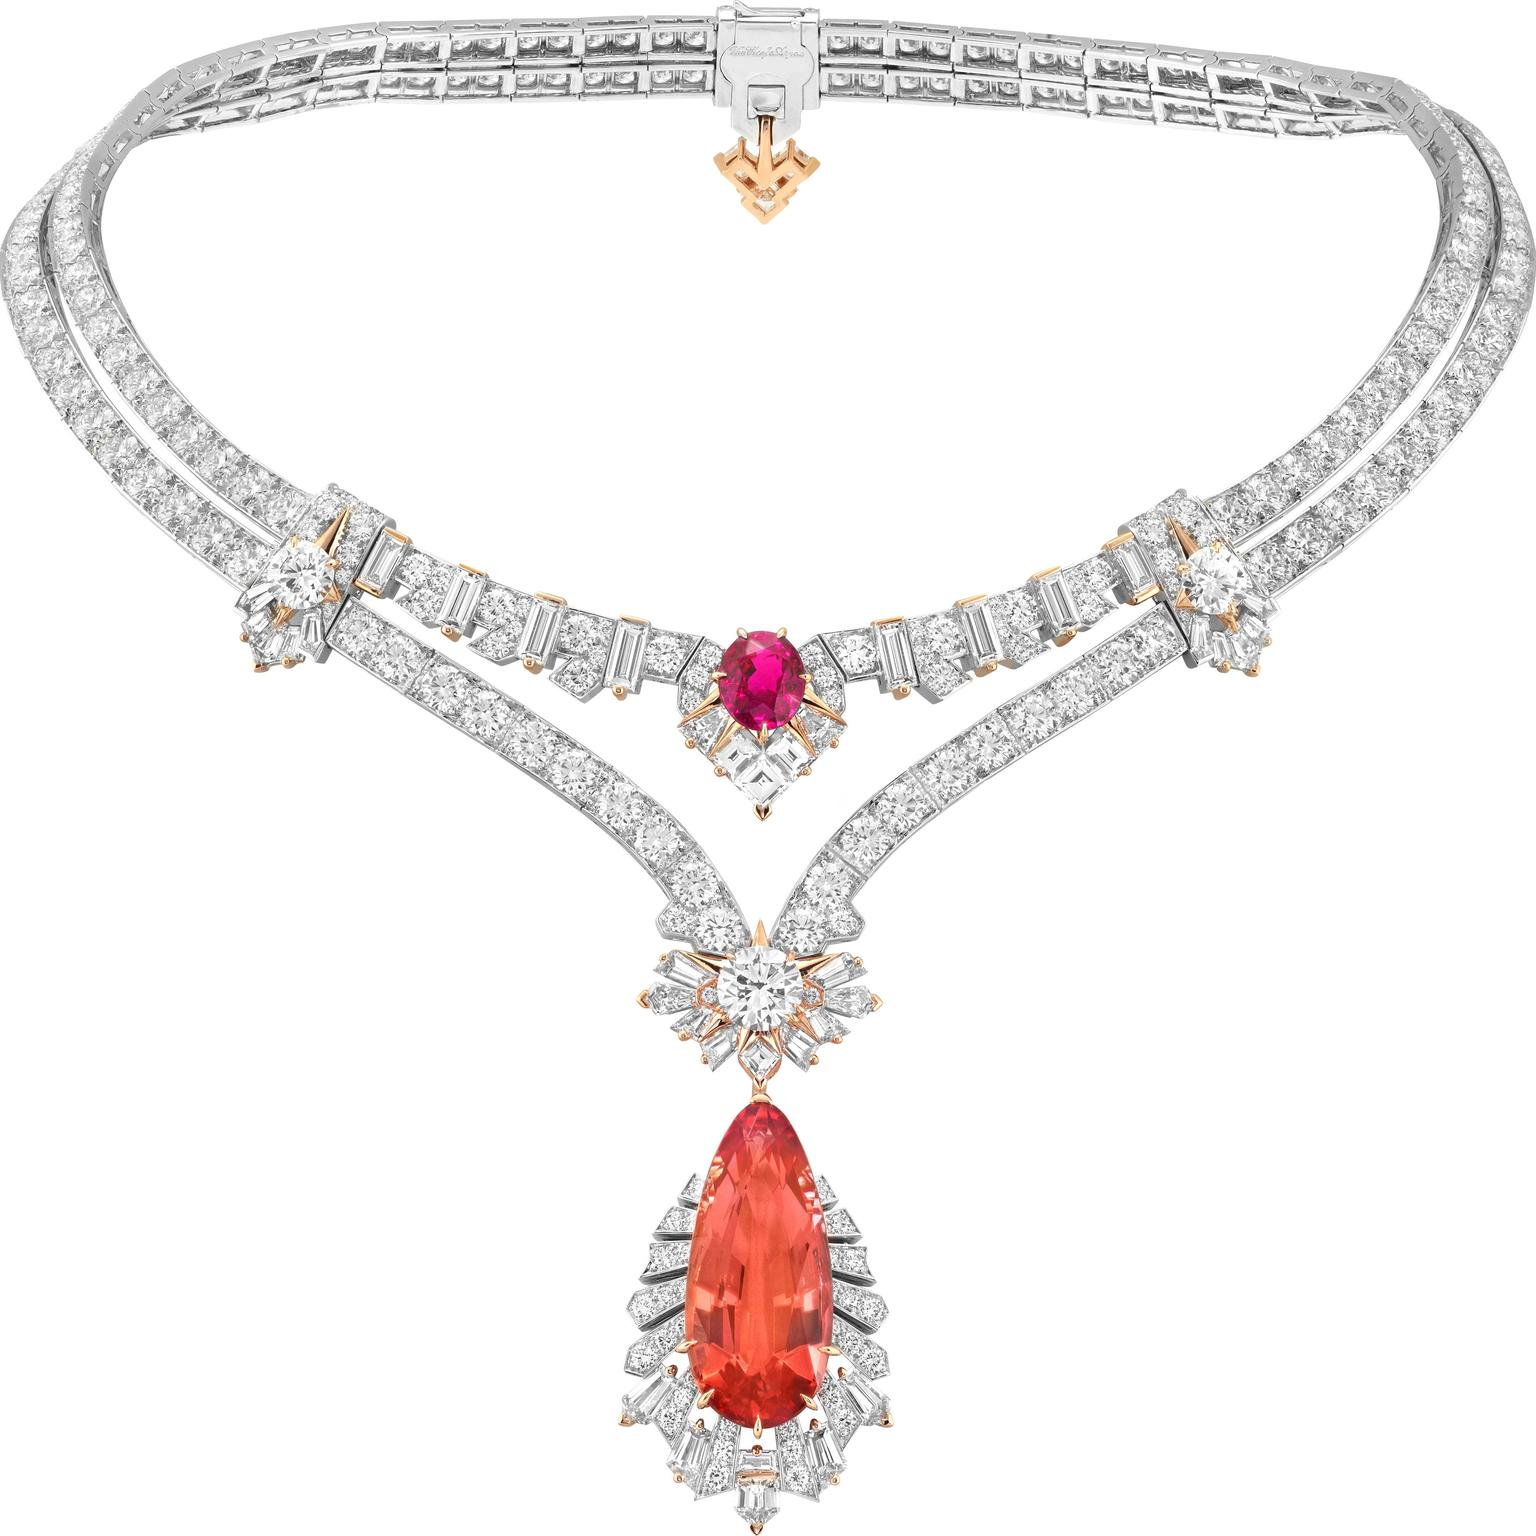 Ceinture necklace by Van Cleef & Arpels